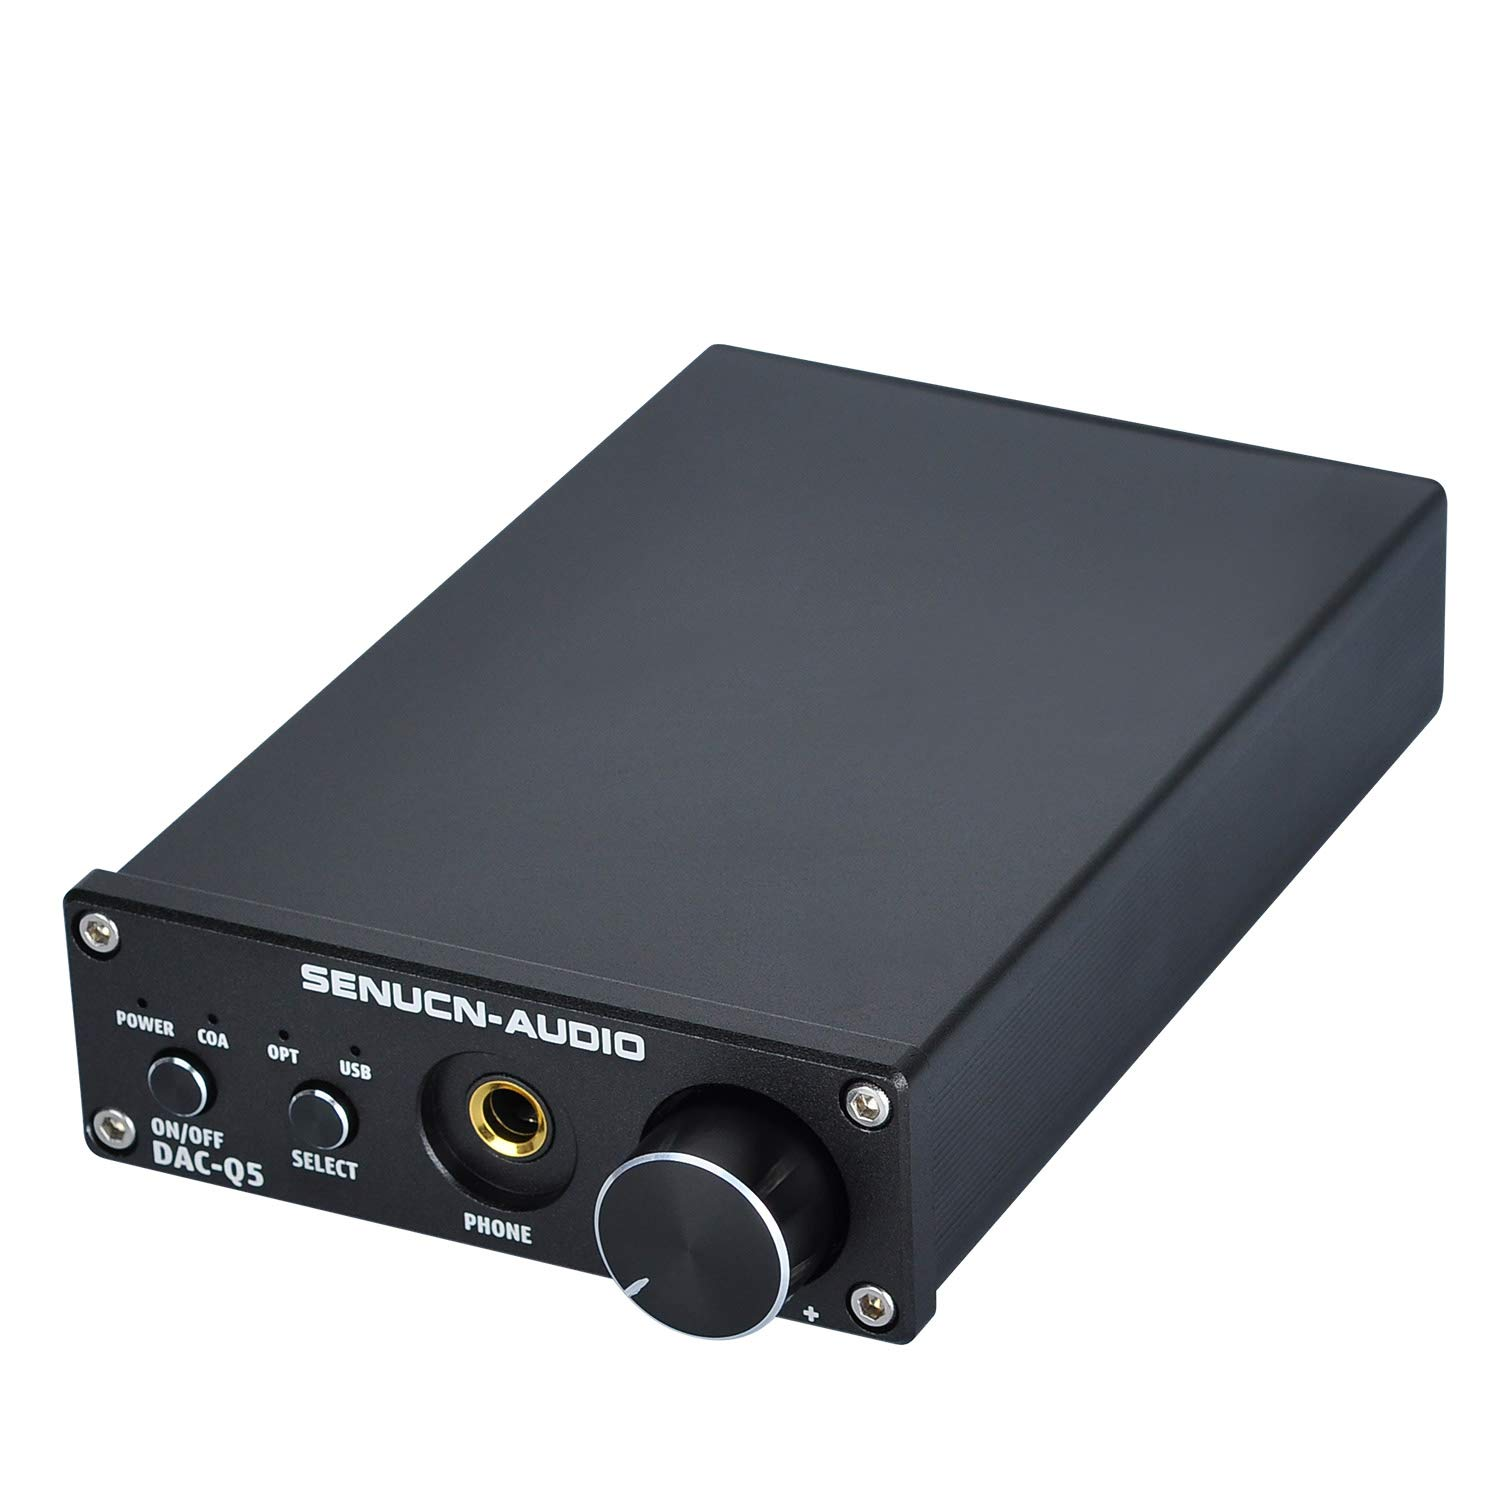 SENUCN-Audio Q5 DAC & Headphone Amplifier, Optical Coaxial Digital to Analog Converter/USB Stereo Audio Decoder